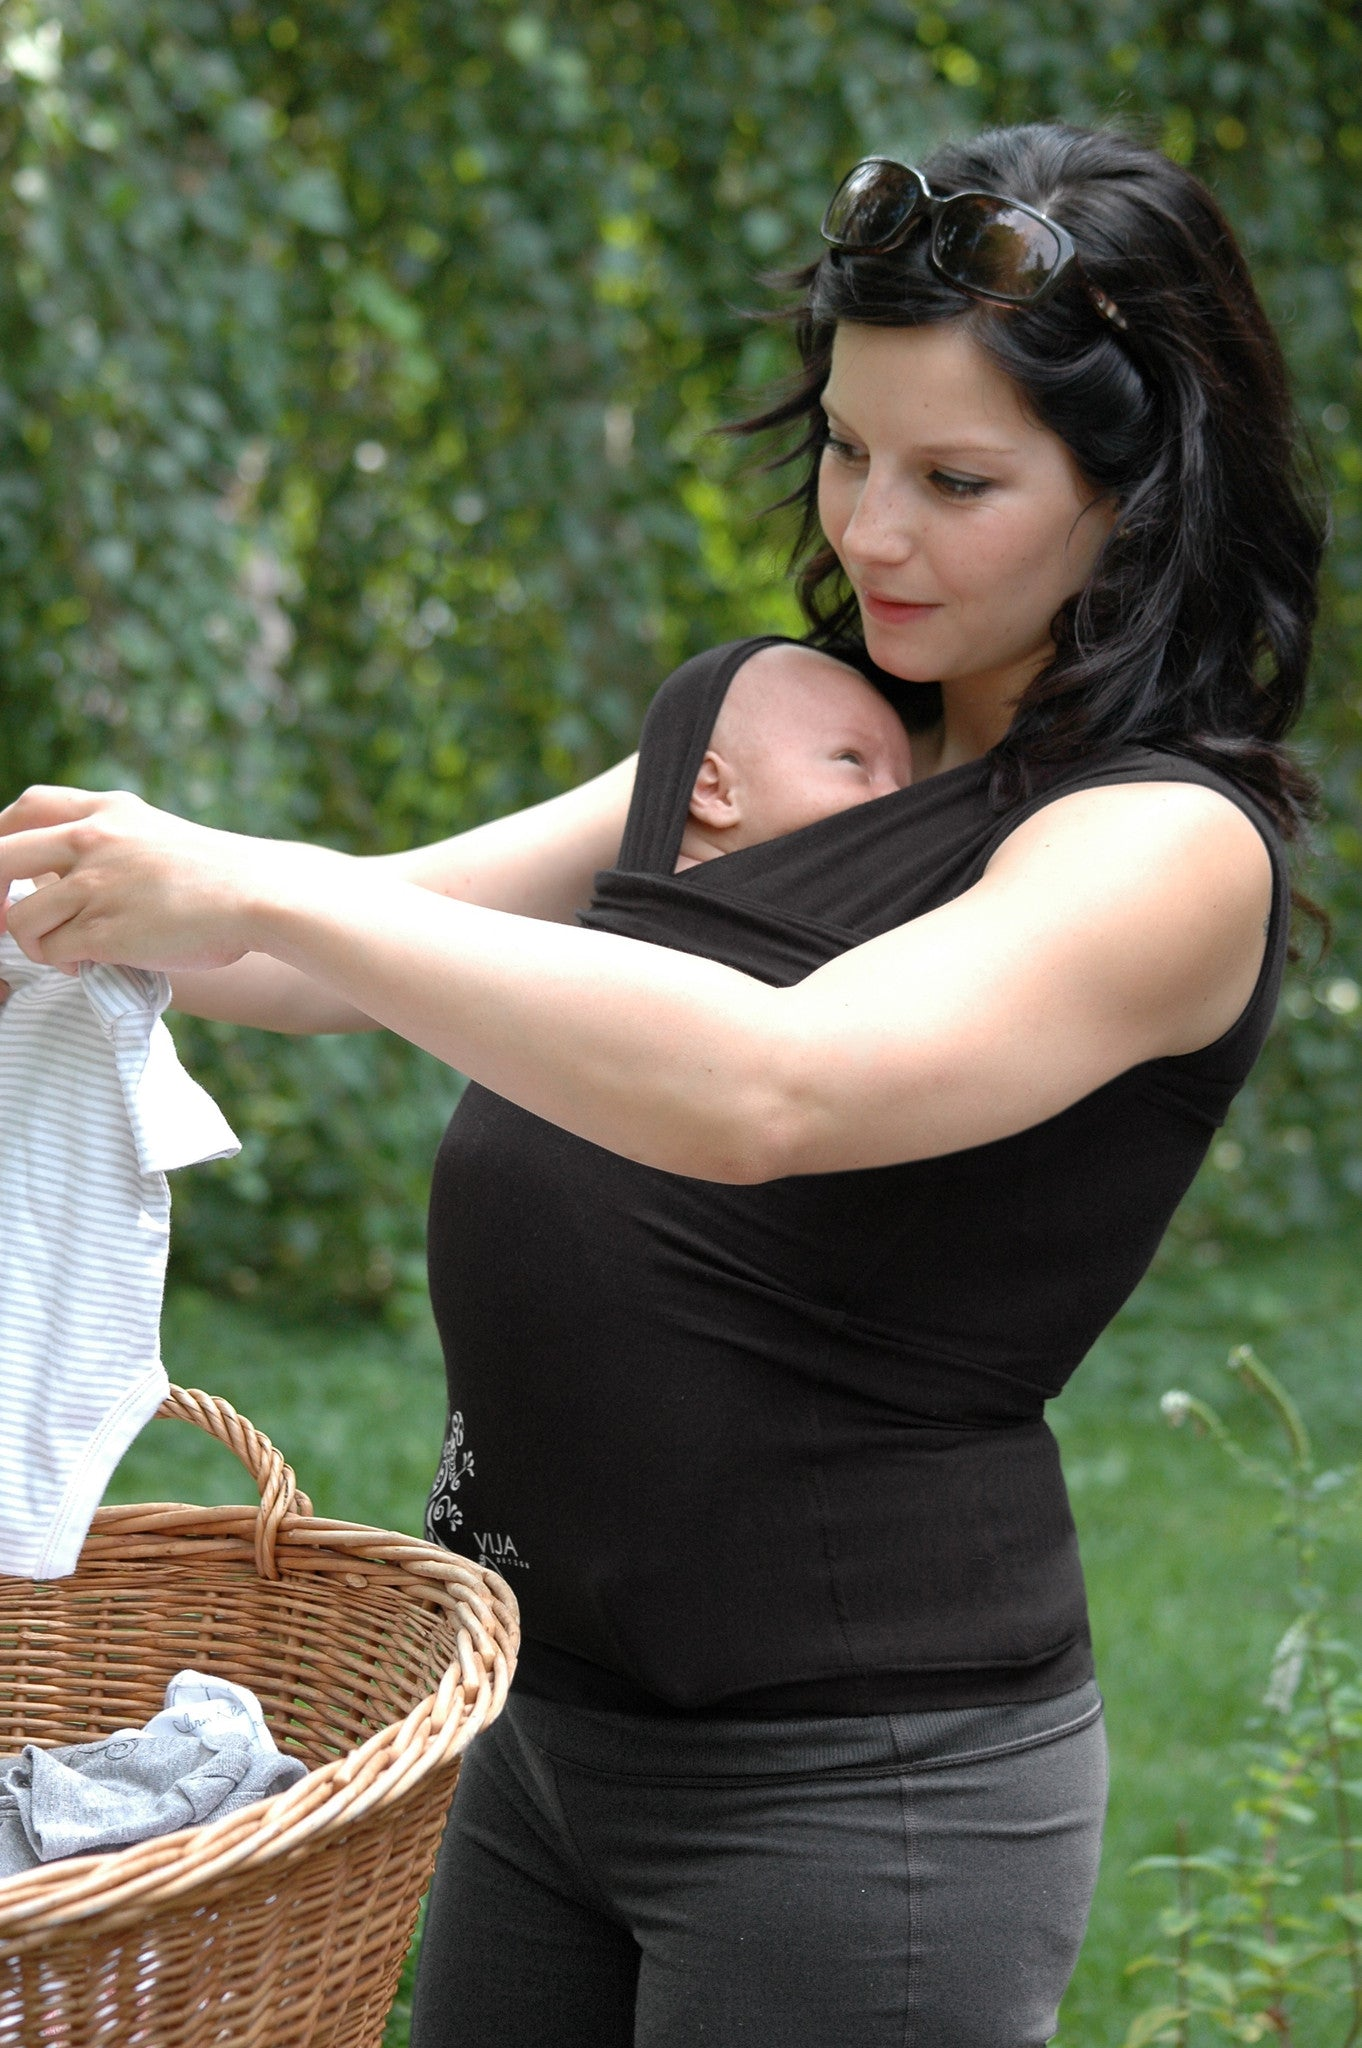 Enjoy daily skin to skin contact to boost your baby's development.  It's easy with the Kangaroo Care Clothing Collection from Vija Design